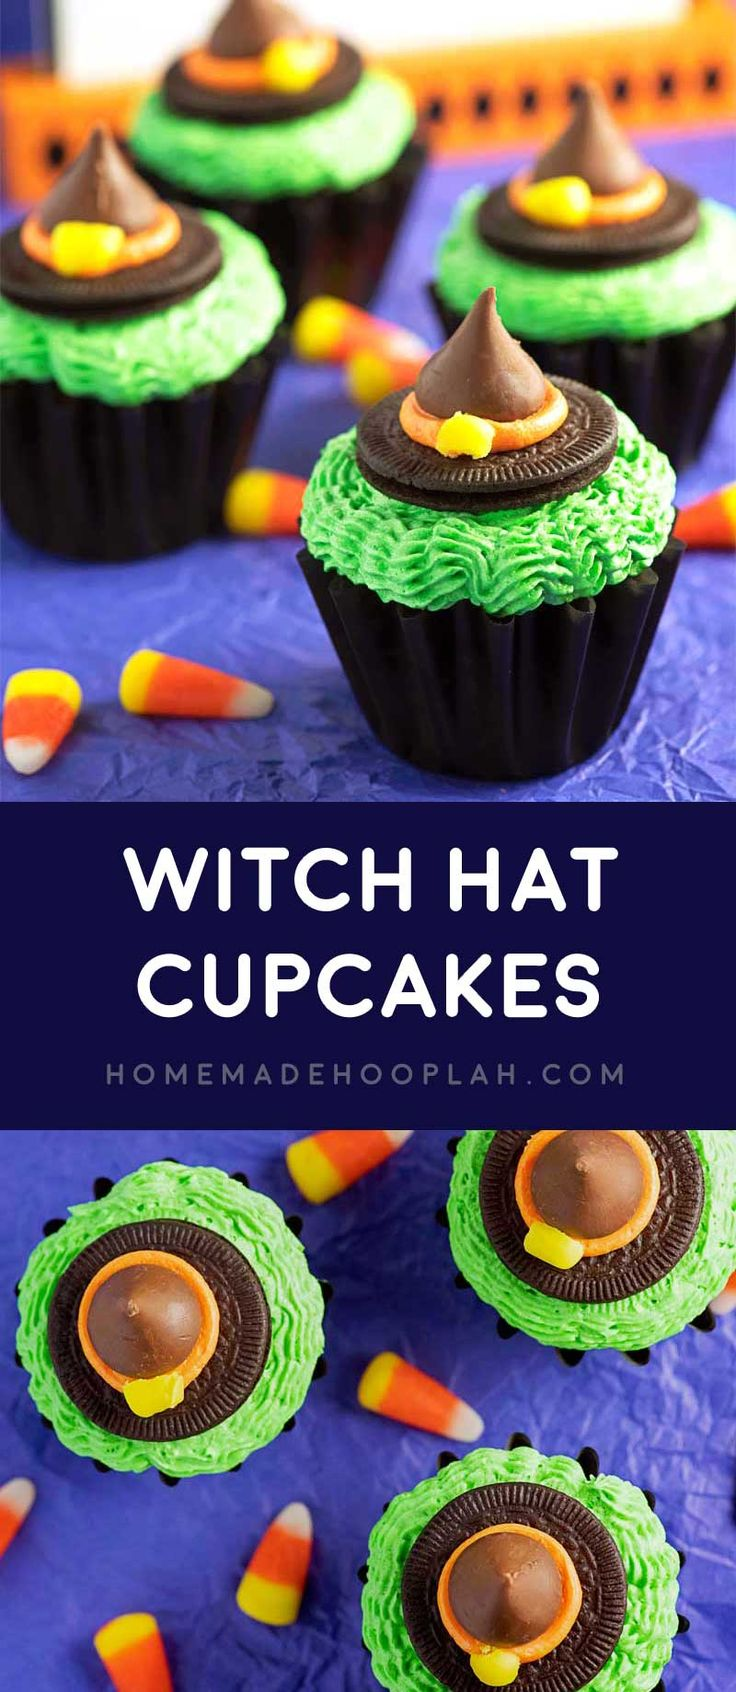 Witch Hat Cupcakes! A festive witchy treat that's easy to make! Made with chocolate cupcakes, colorful buttercream frosting, Oreo Thins, Hershey Kisses, and candy corn pieces.   HomemadeHooplah.com